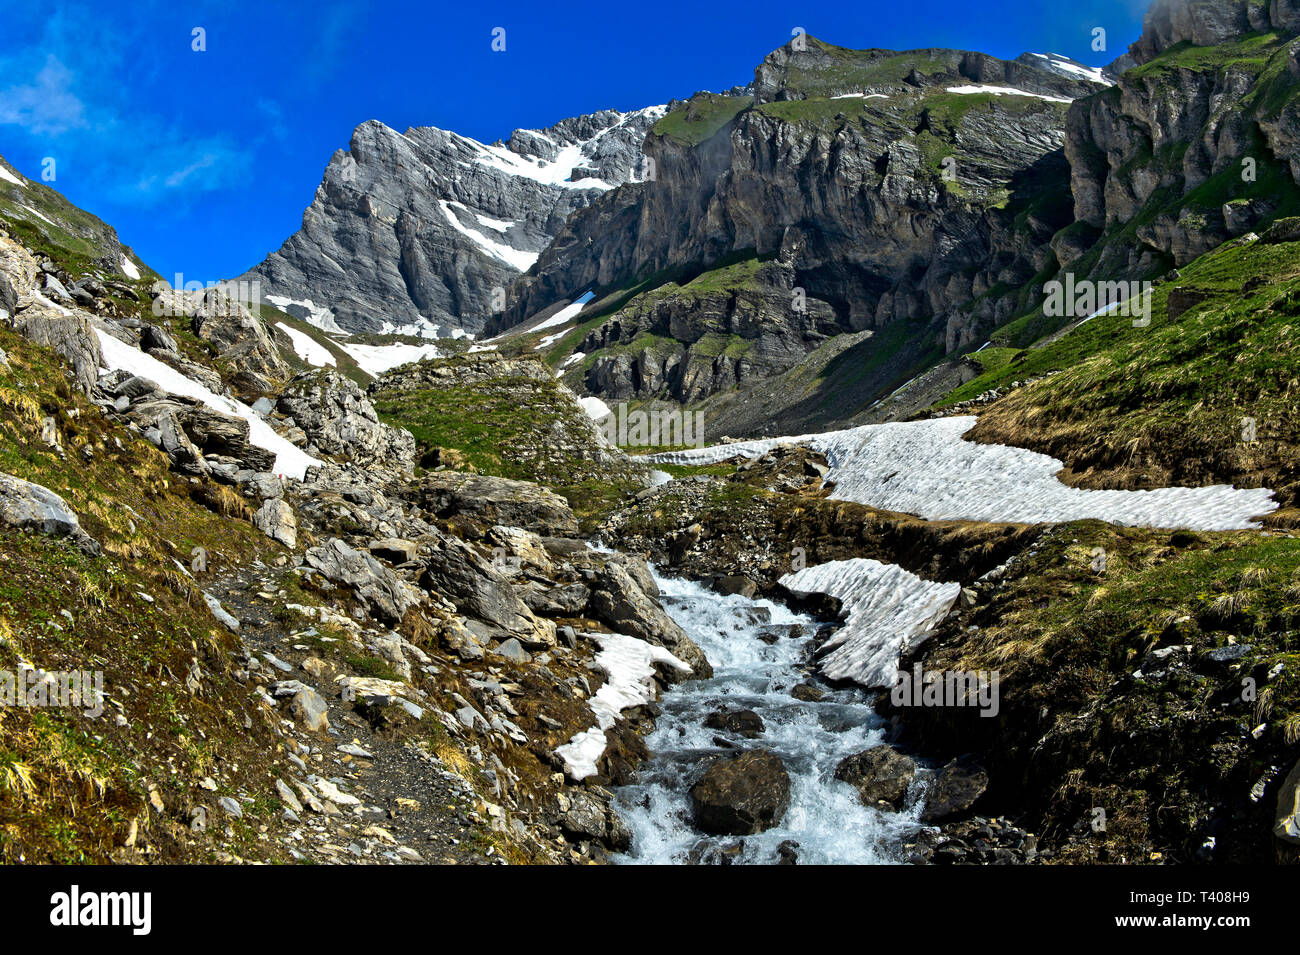 Mountain stream in the high mountains in spring, Grand Muveran, Ovronnaz, Valais, Switzerland - Stock Image